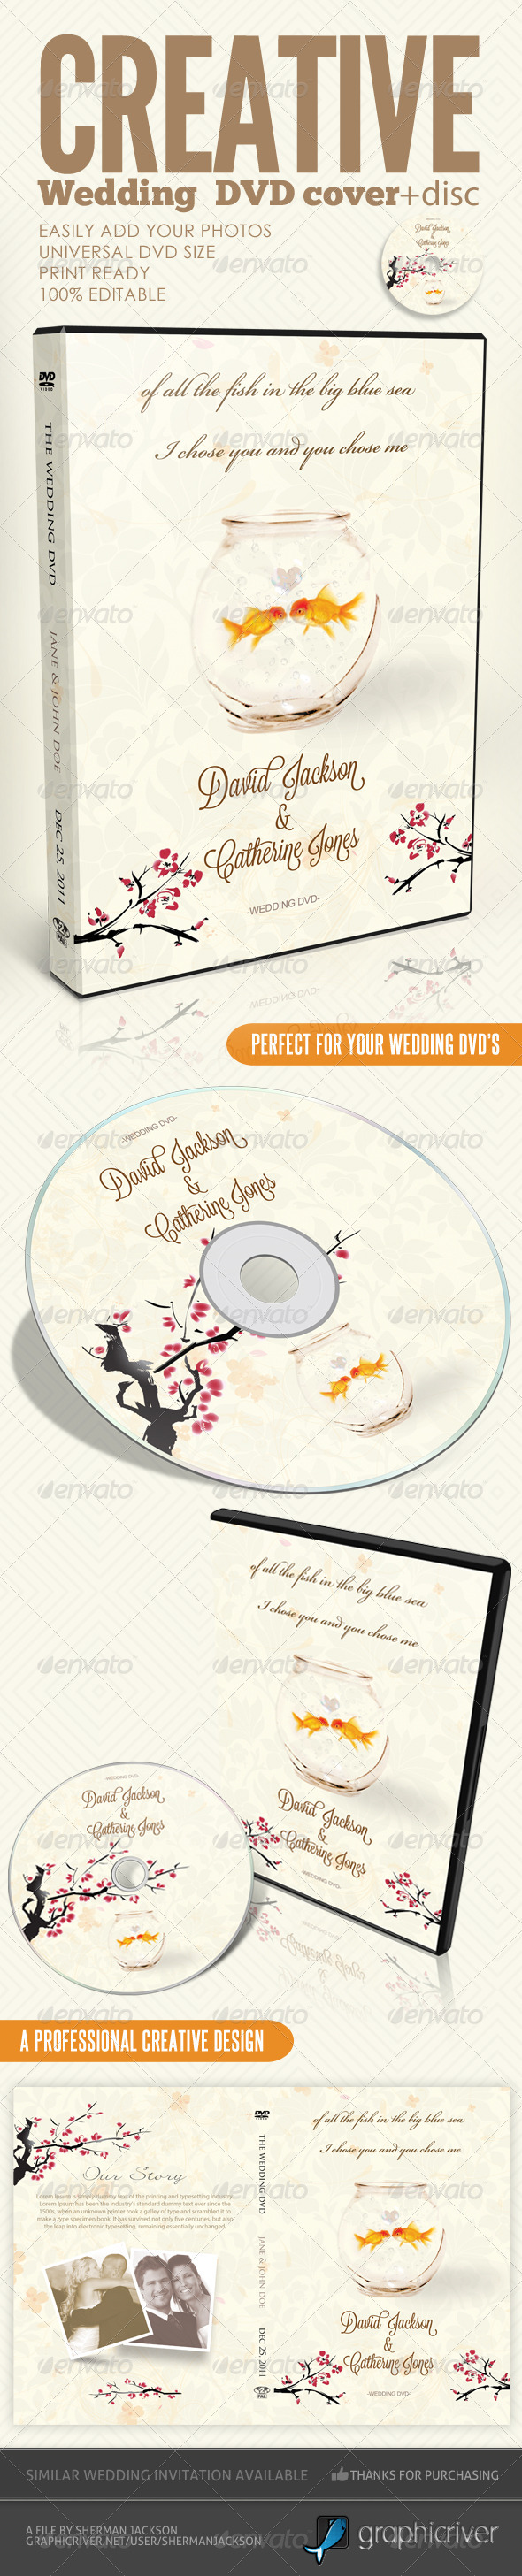 Creative Wedding DVD & Disc Label Artwork PSD - CD & DVD artwork Print Templates